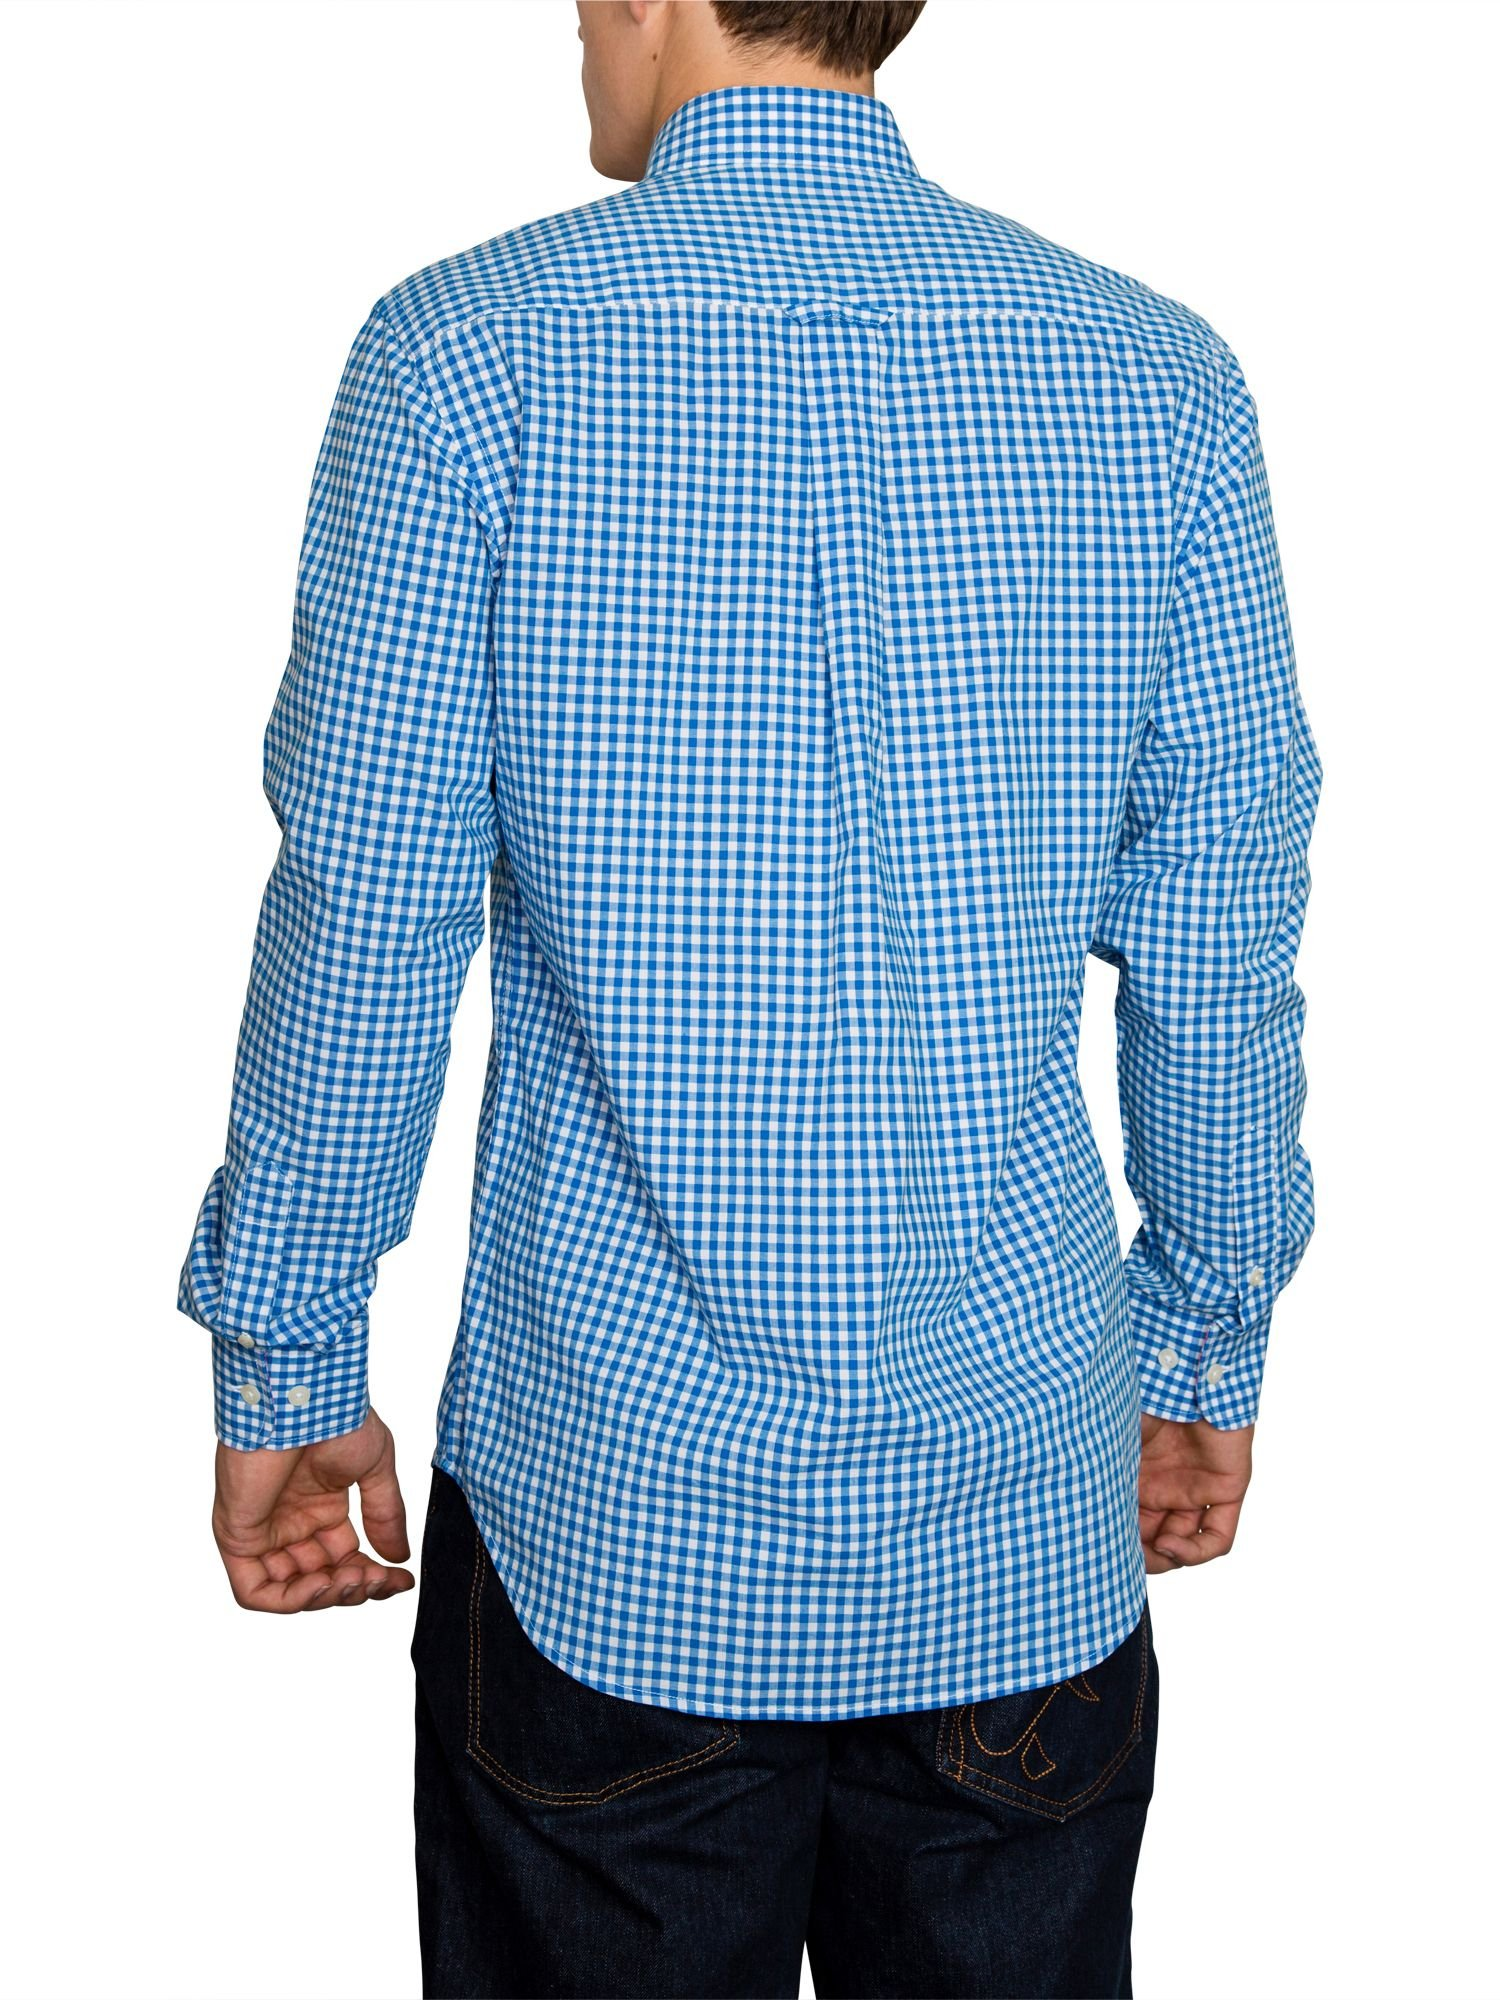 Raging Bull Signature Gingham Long Sleeve Button Down